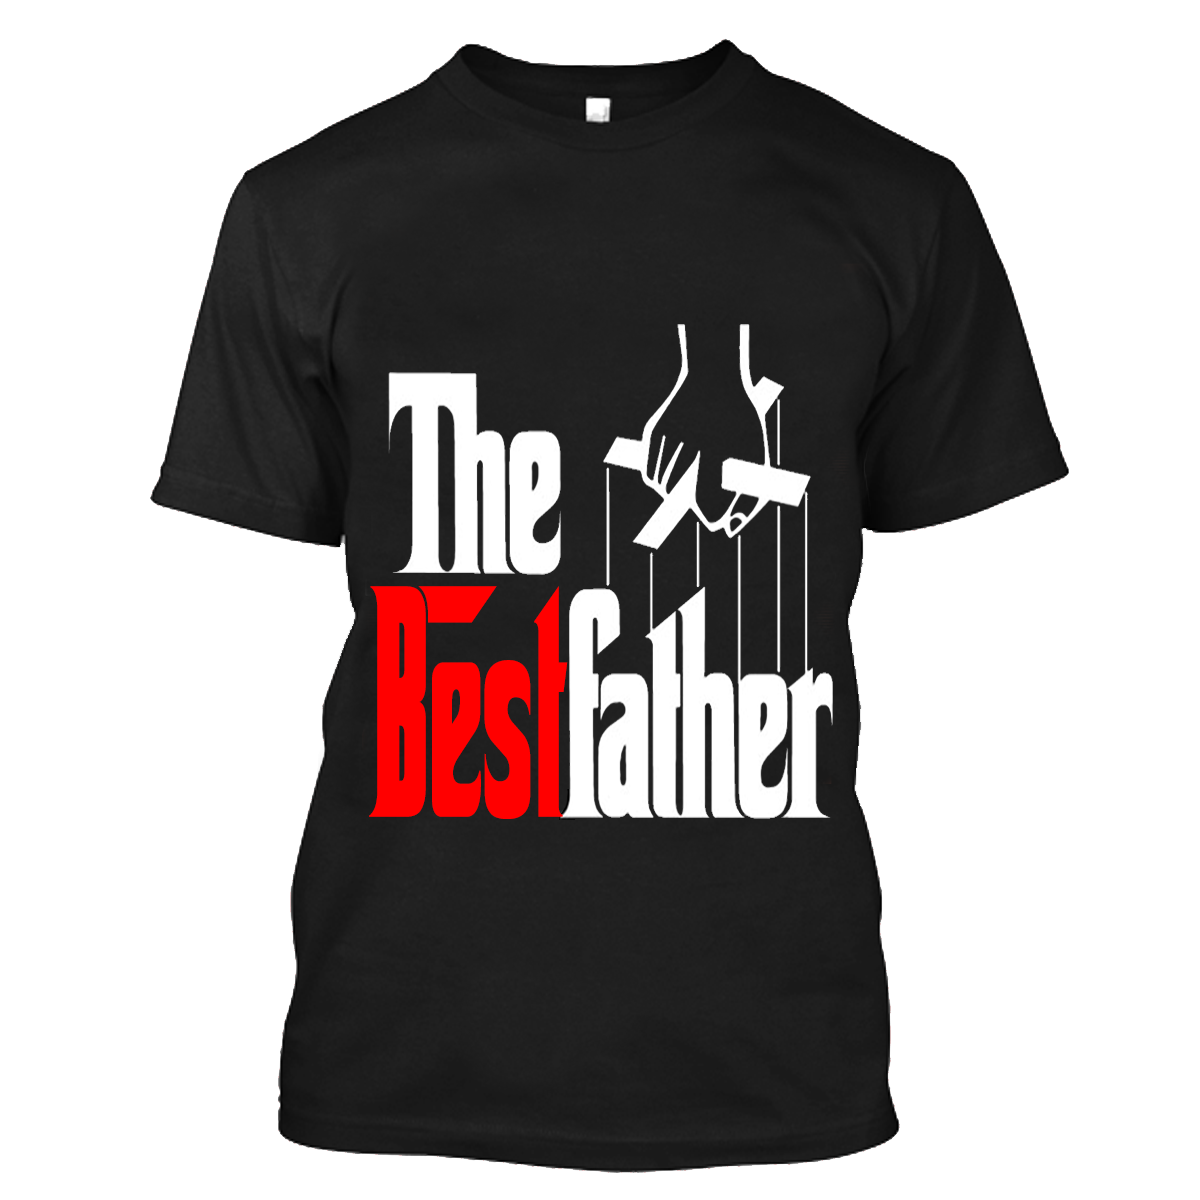 The Best Father - (Red) - AVAILABLE FOR MEN/WOMEN - NOTE: May not arrive in time for Father's Day